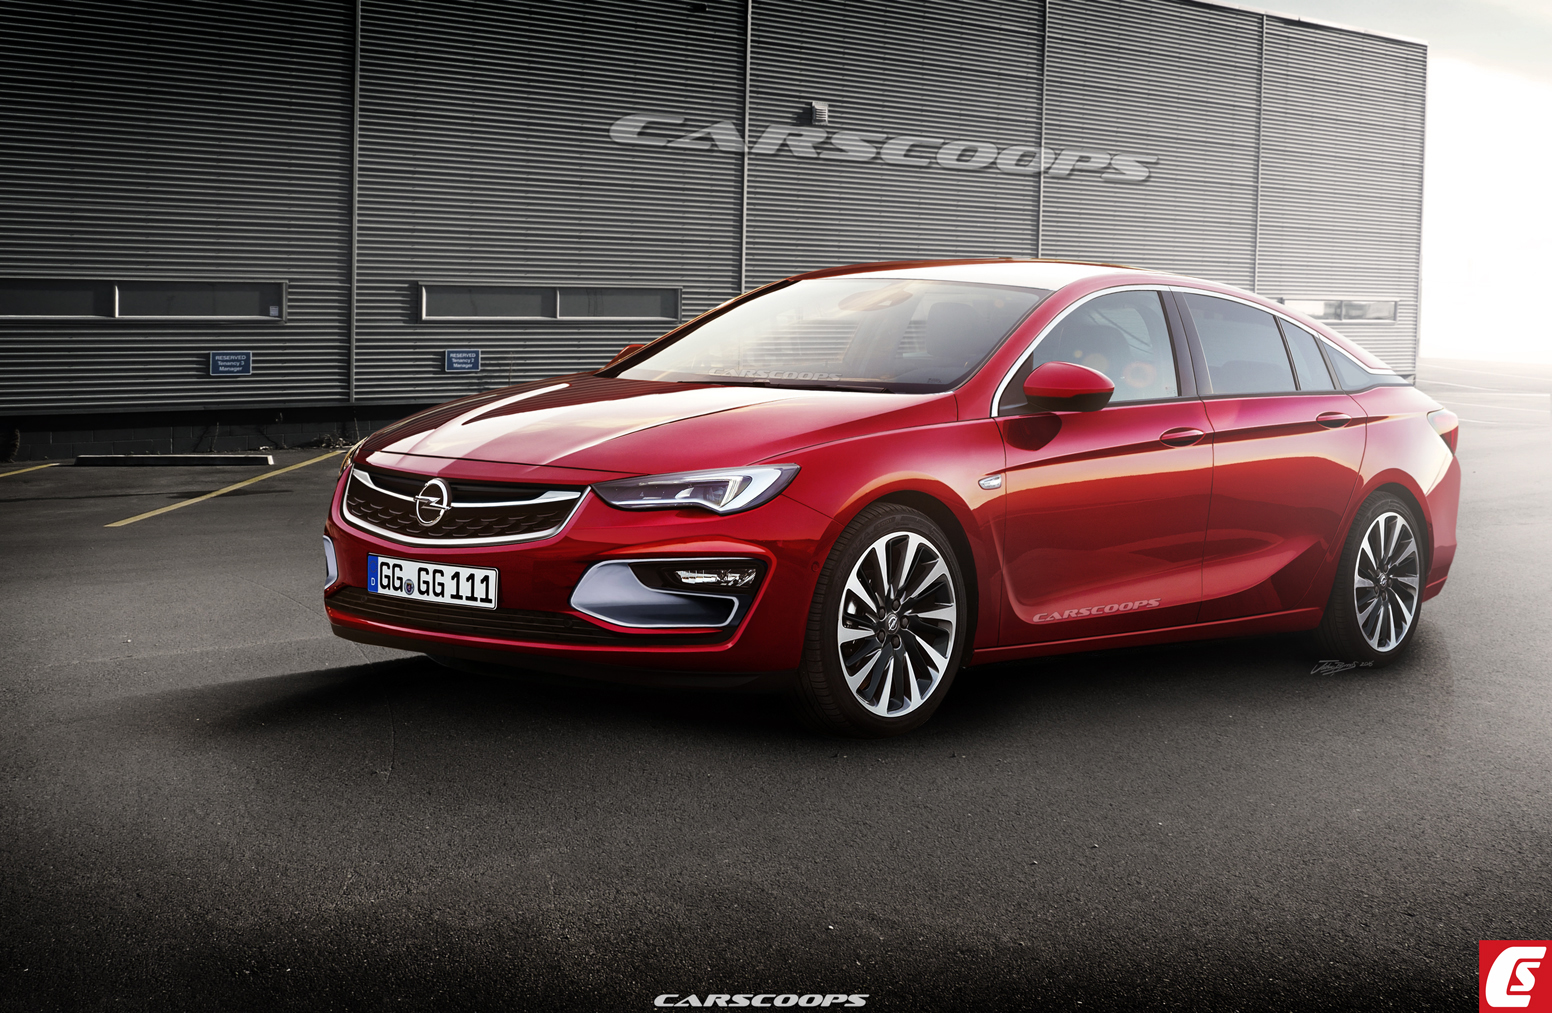 2018 Opel Insignia Hatchback photo - 2